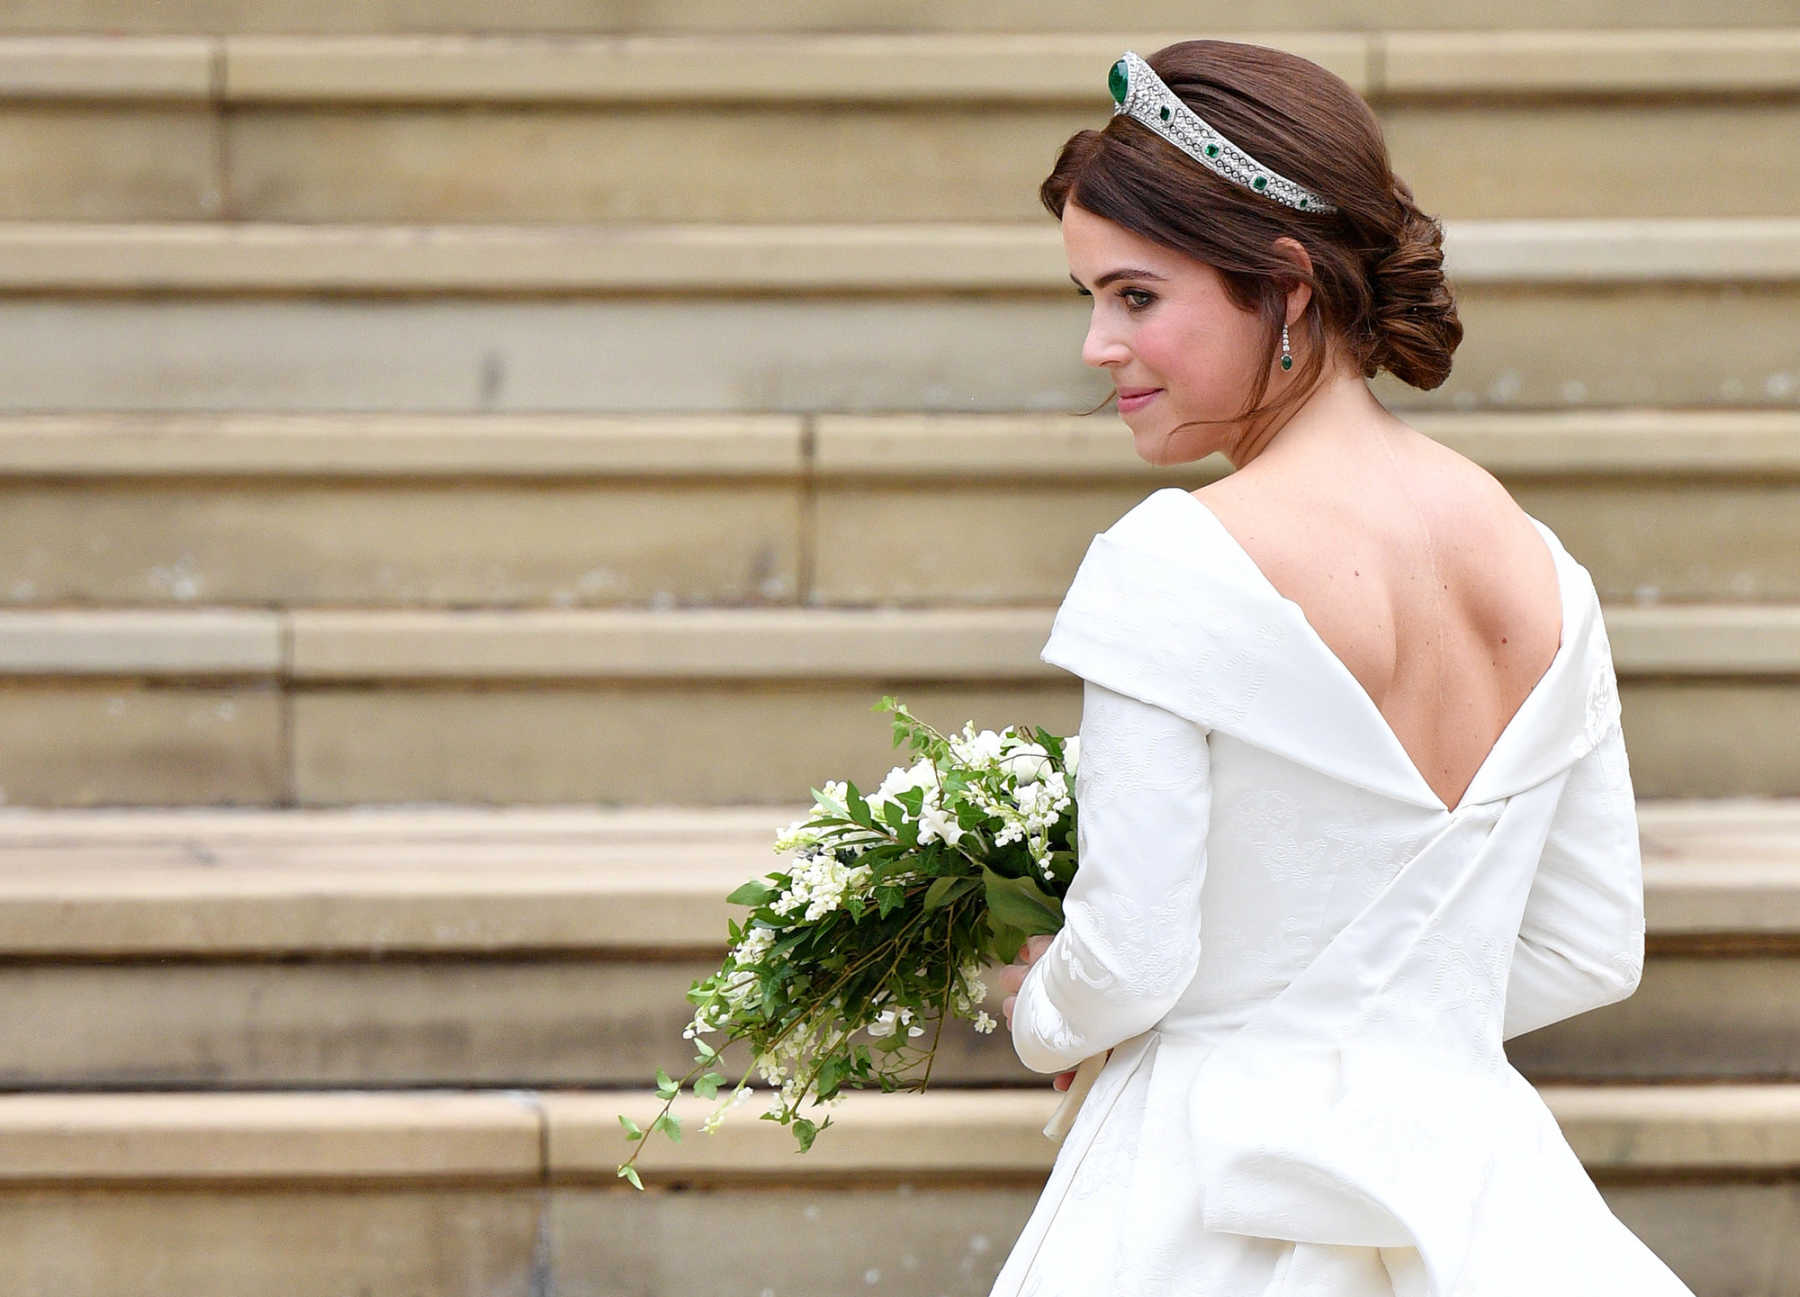 The Hidden Meanings Behind Royal Wedding Dresses | CafeMom.com